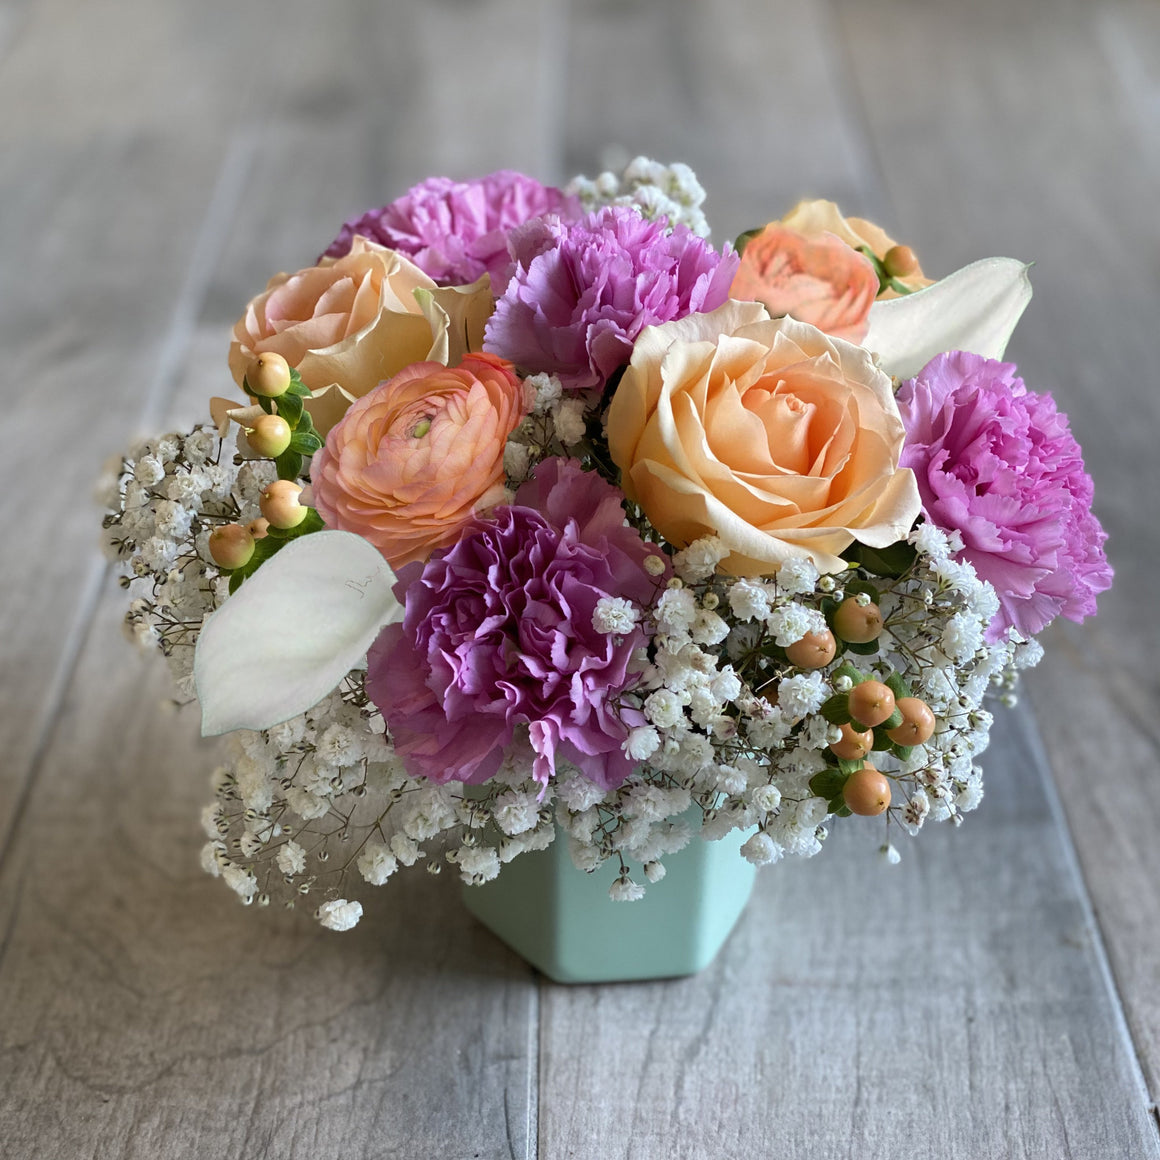 April 3, 2020 Virtual Flower Workshop - Order by March 31 for Shipping